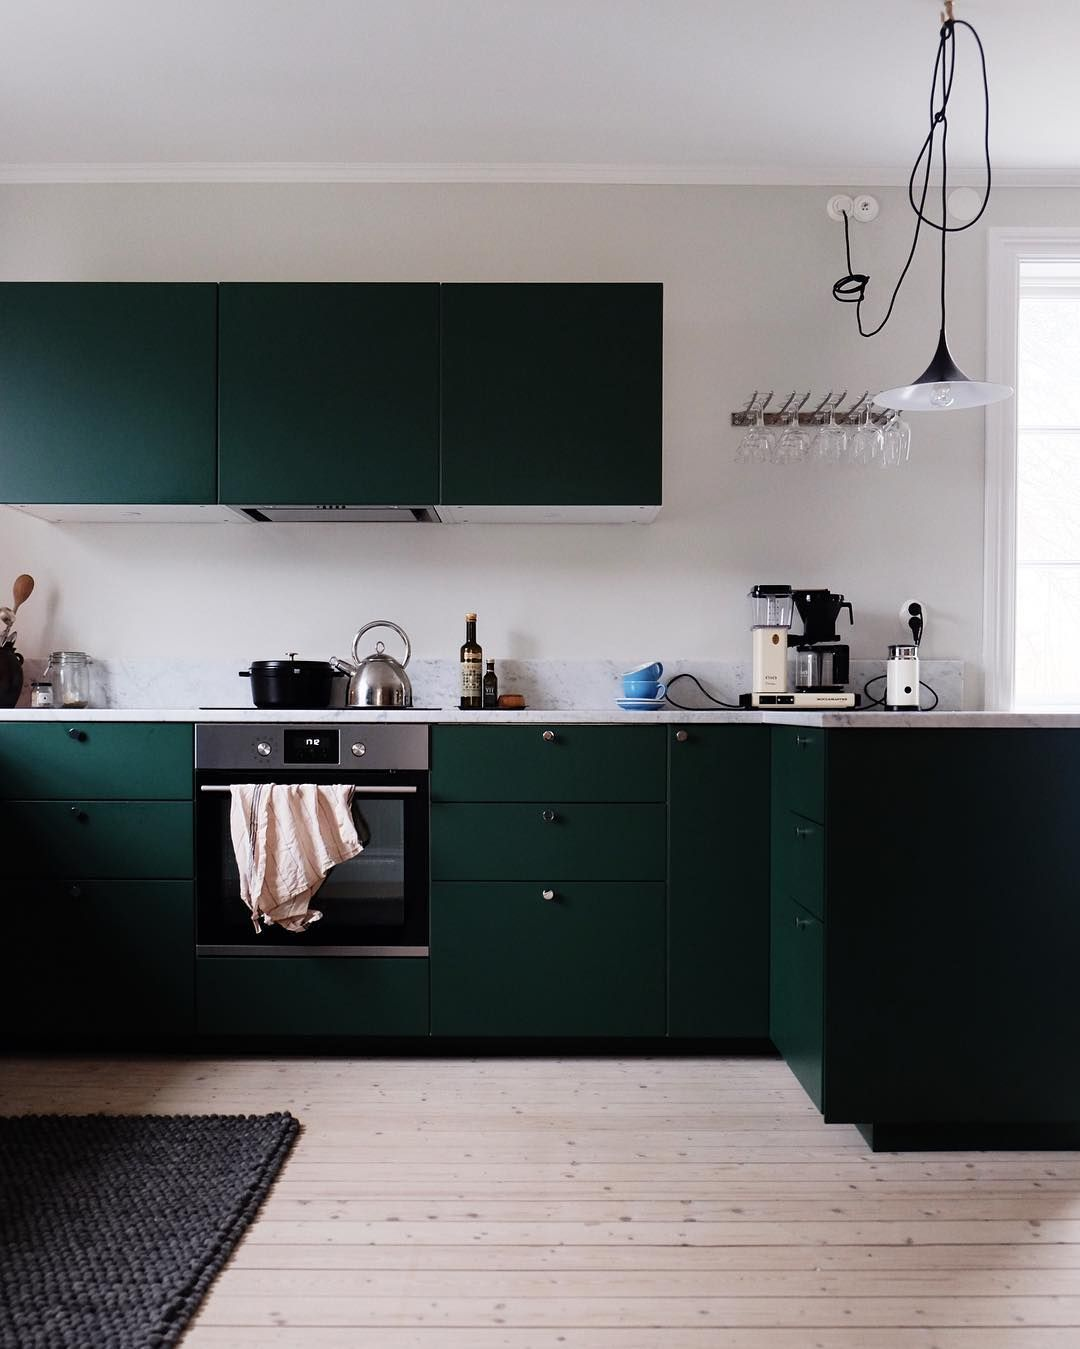 Dark green kitchen cabinets emma solveigsdotter home and life in